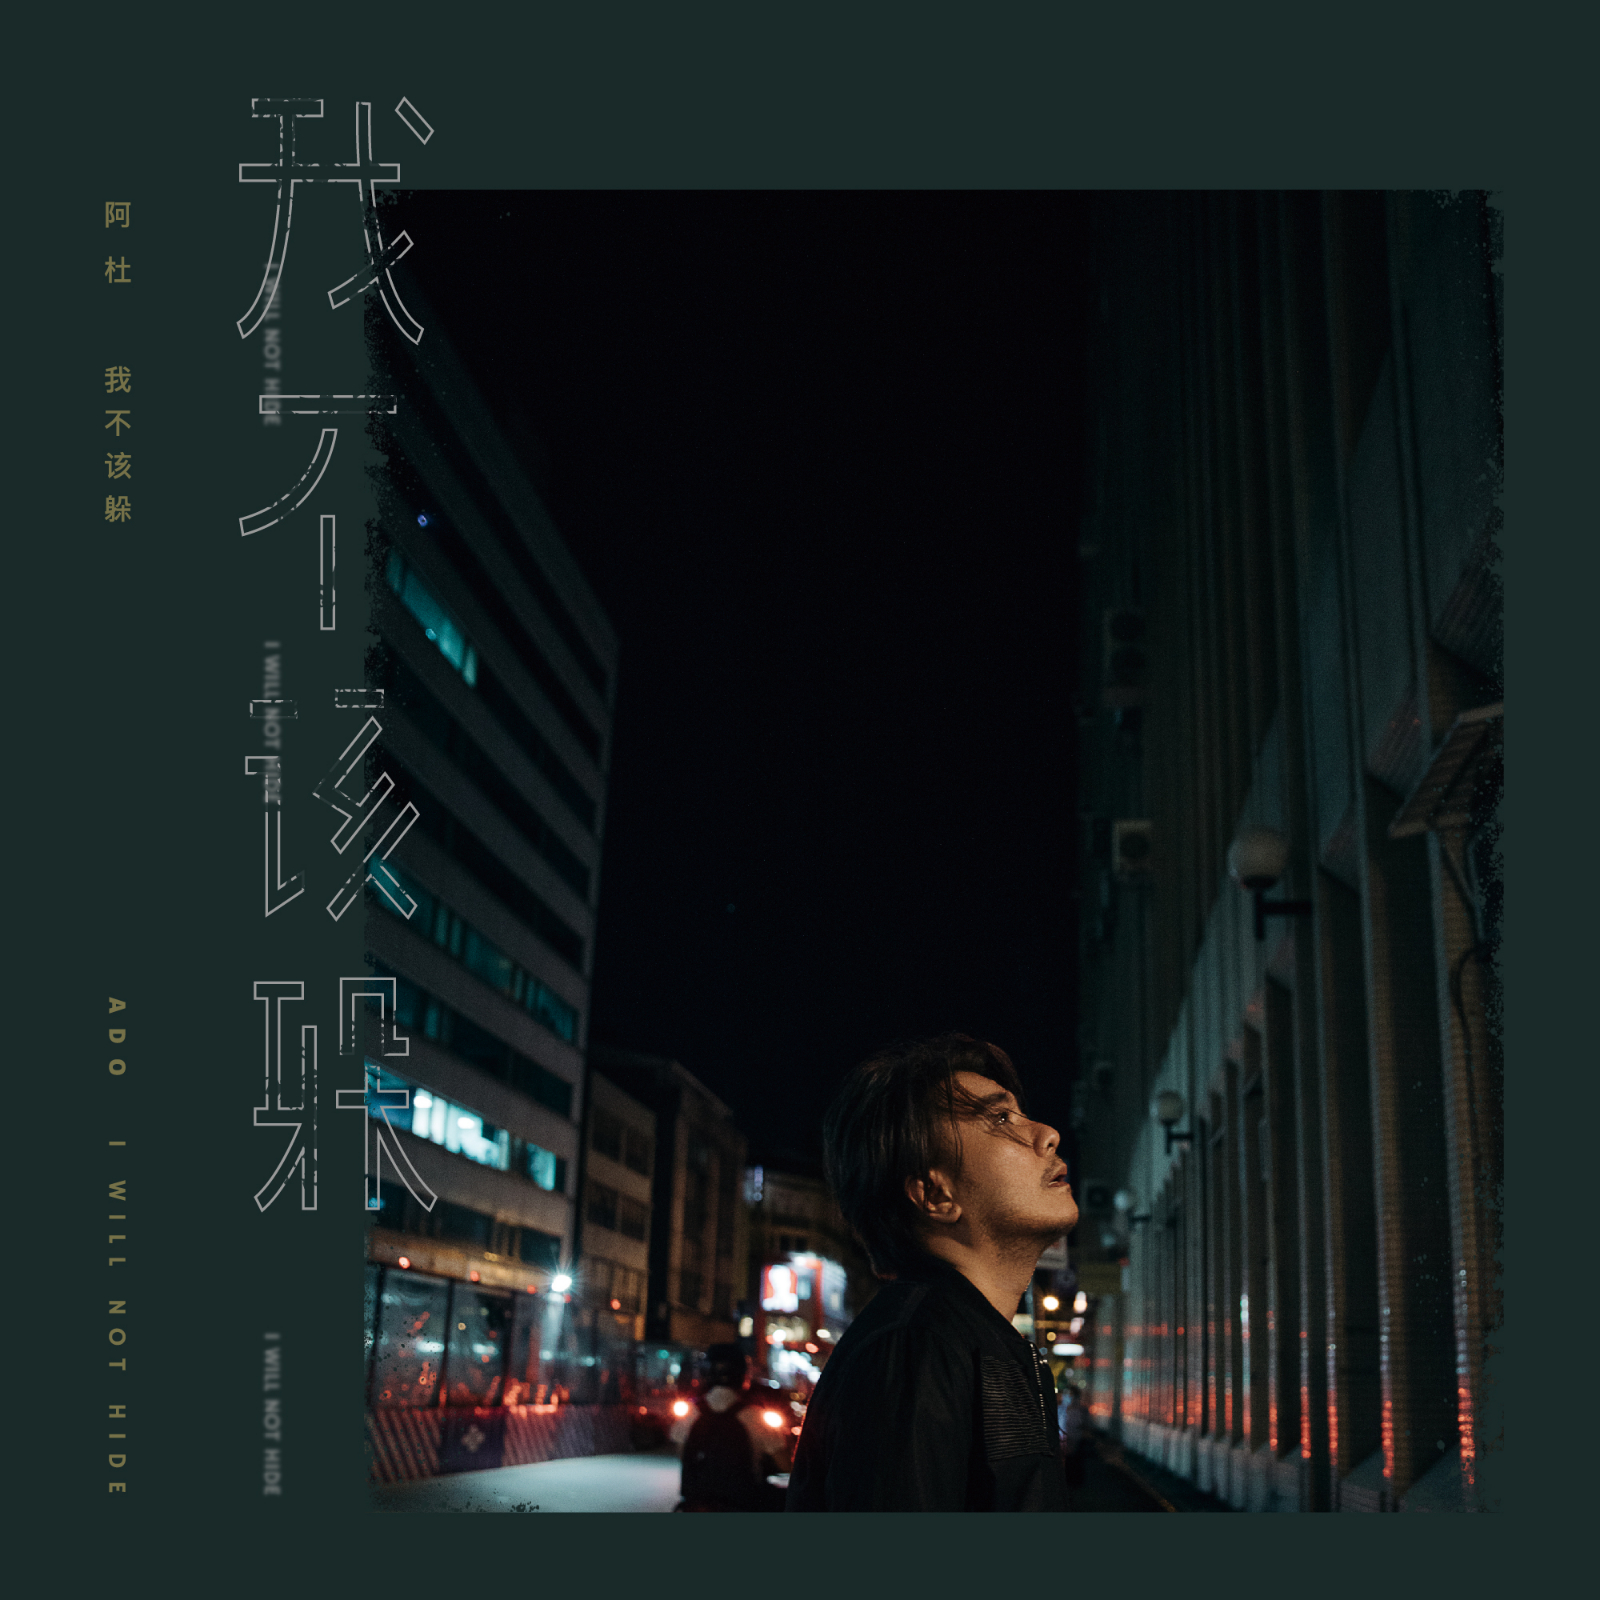 A-du's 10th album, i shouldn't hide, was released all over asia at the same time: it's finally back.